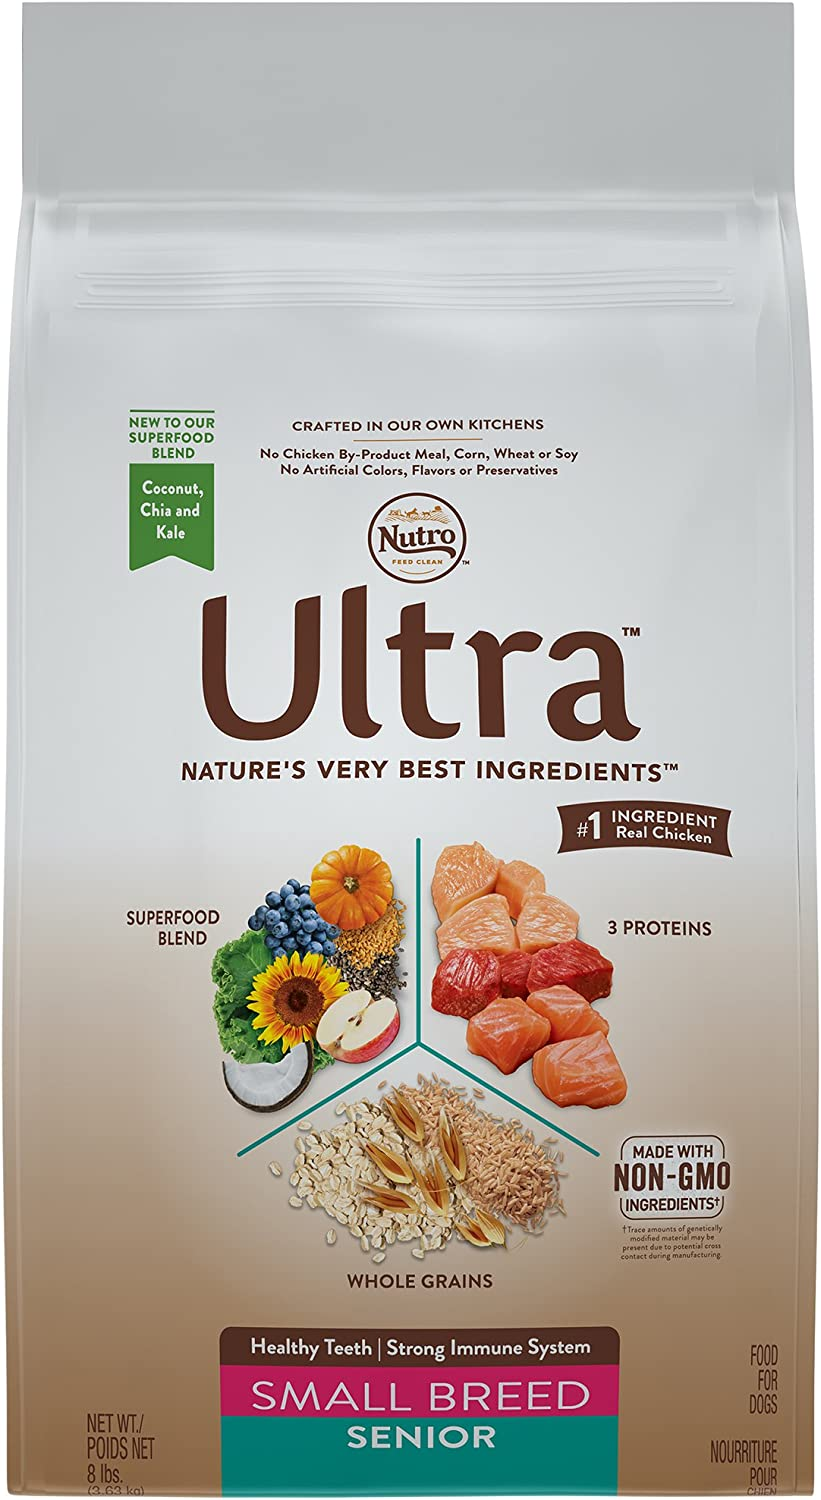 Nutro Ultra Small Breed Senior Dry Dog Food 1 8 Pounds Supports Heathy Teeth And A Strong Immune System Rich In Nutrients And Full Of Flavor Discontinued By Manufacturer